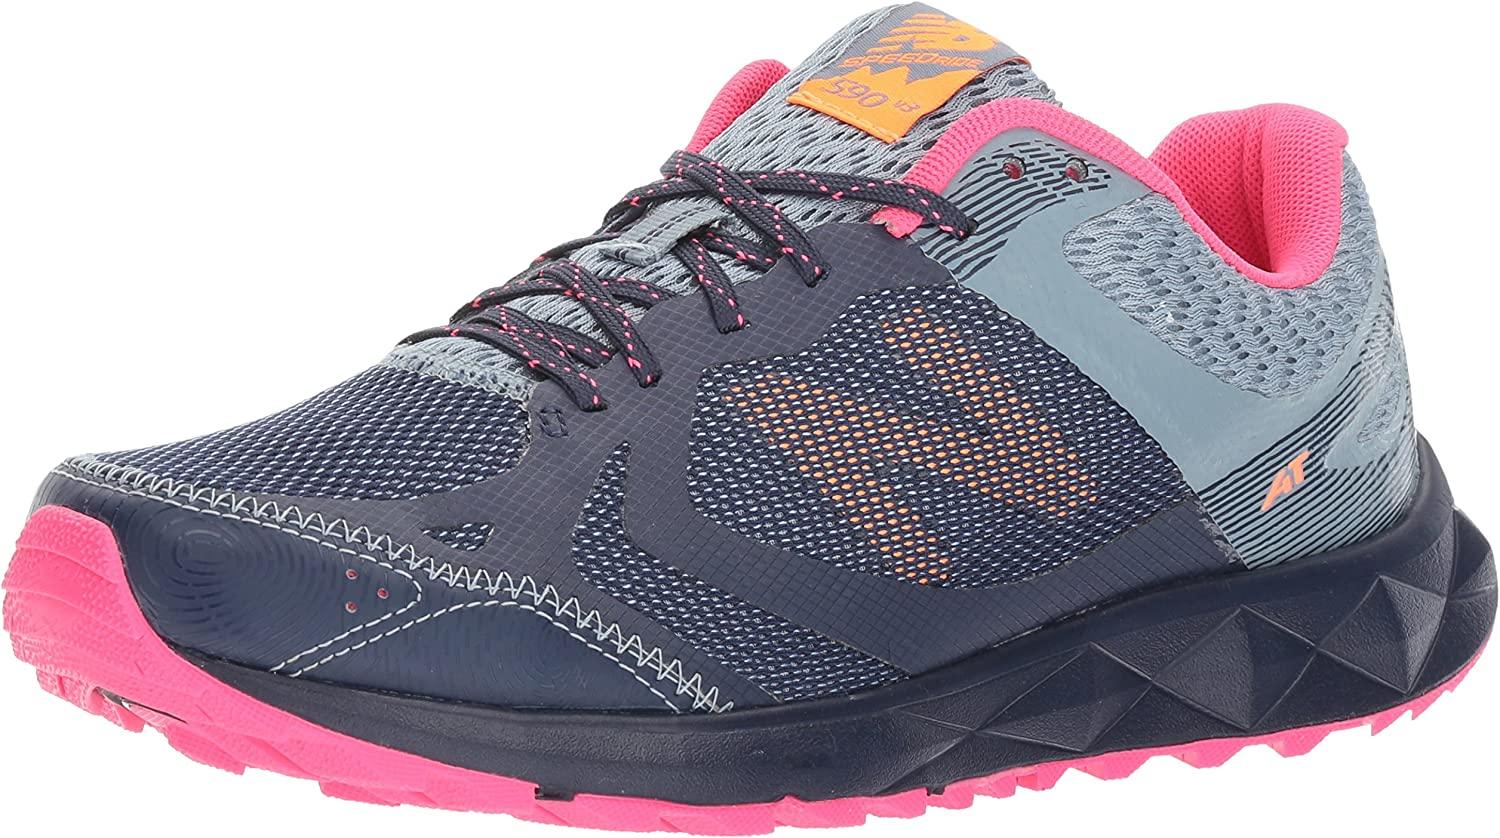 New Balance Women s 590v3 Trail Running Shoe